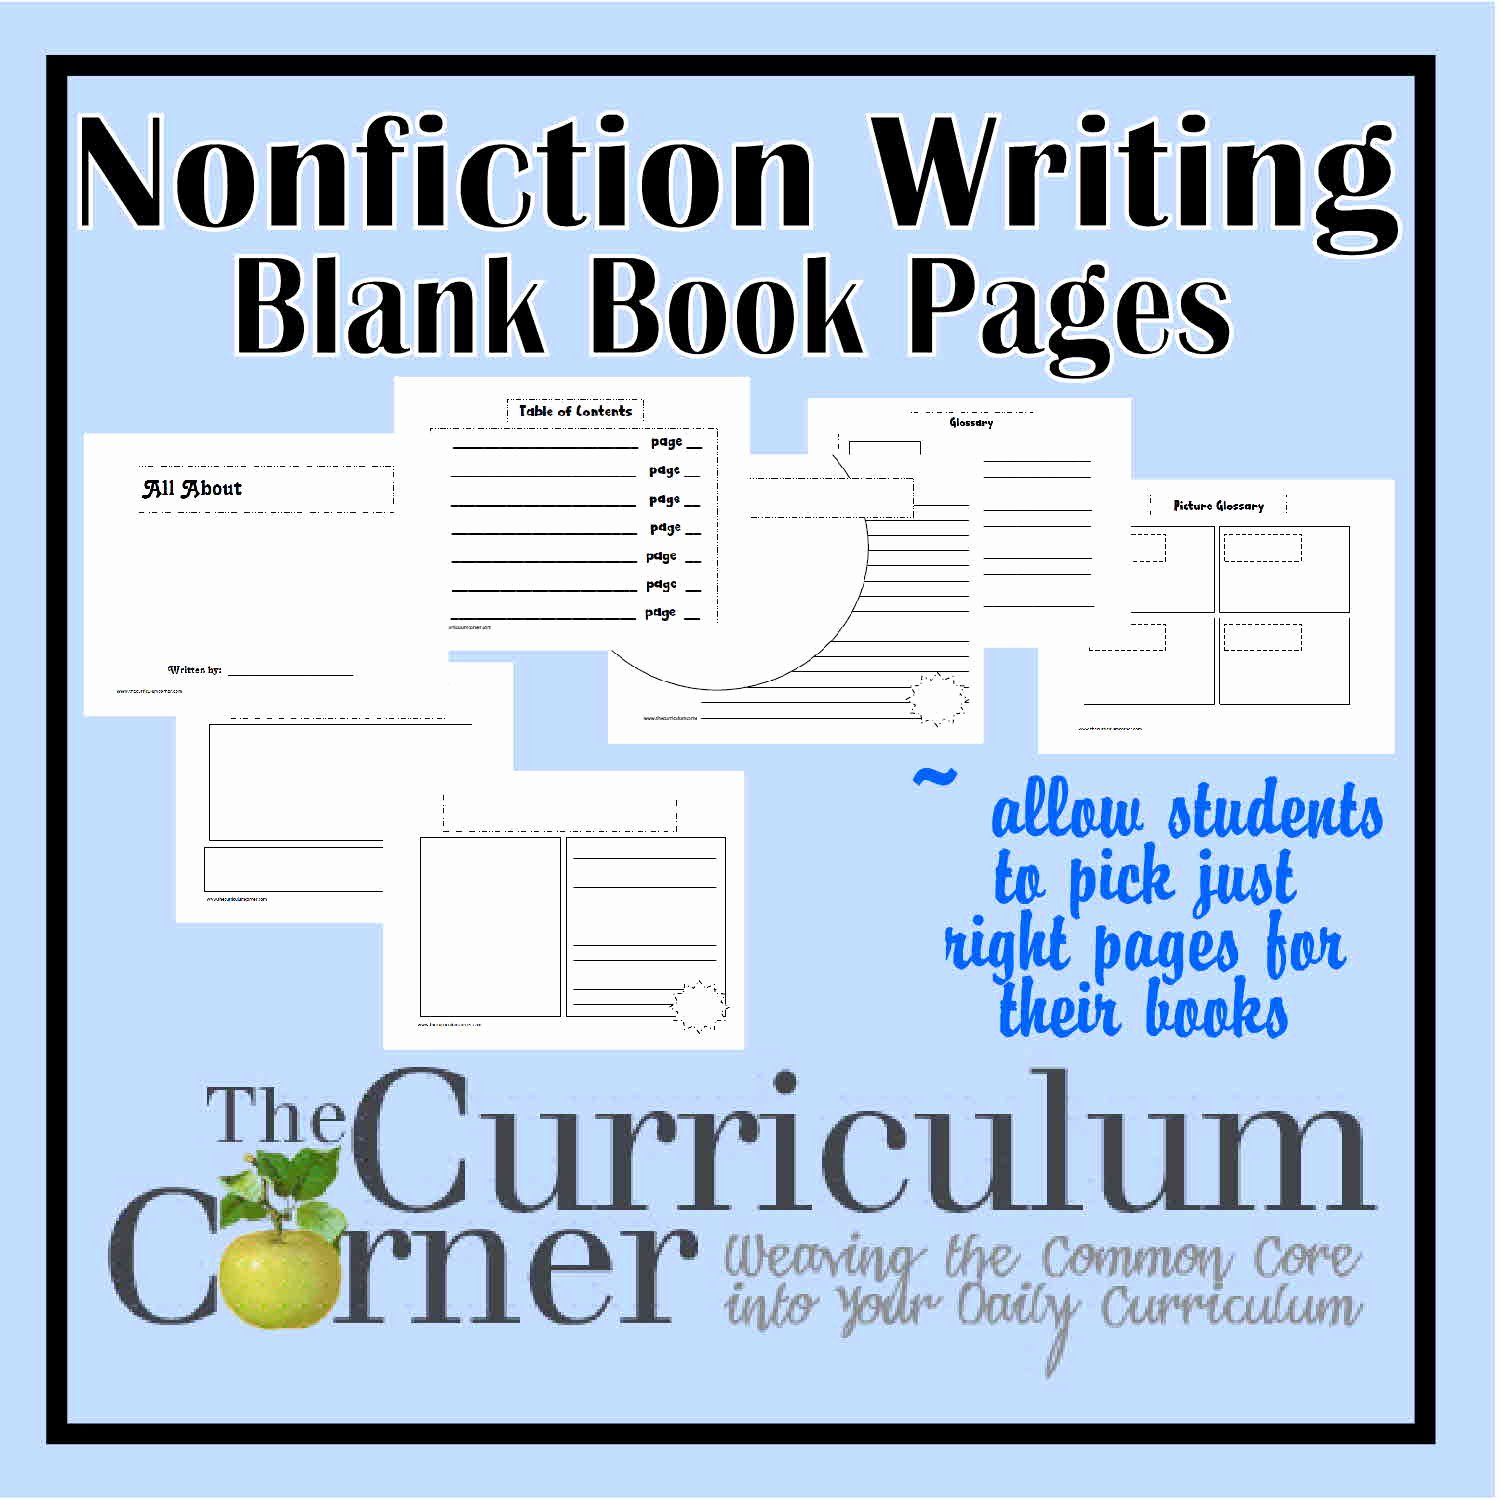 Non Fiction Book Outline Inspirational Nonfiction Writing Blank Book Pages the Curriculum